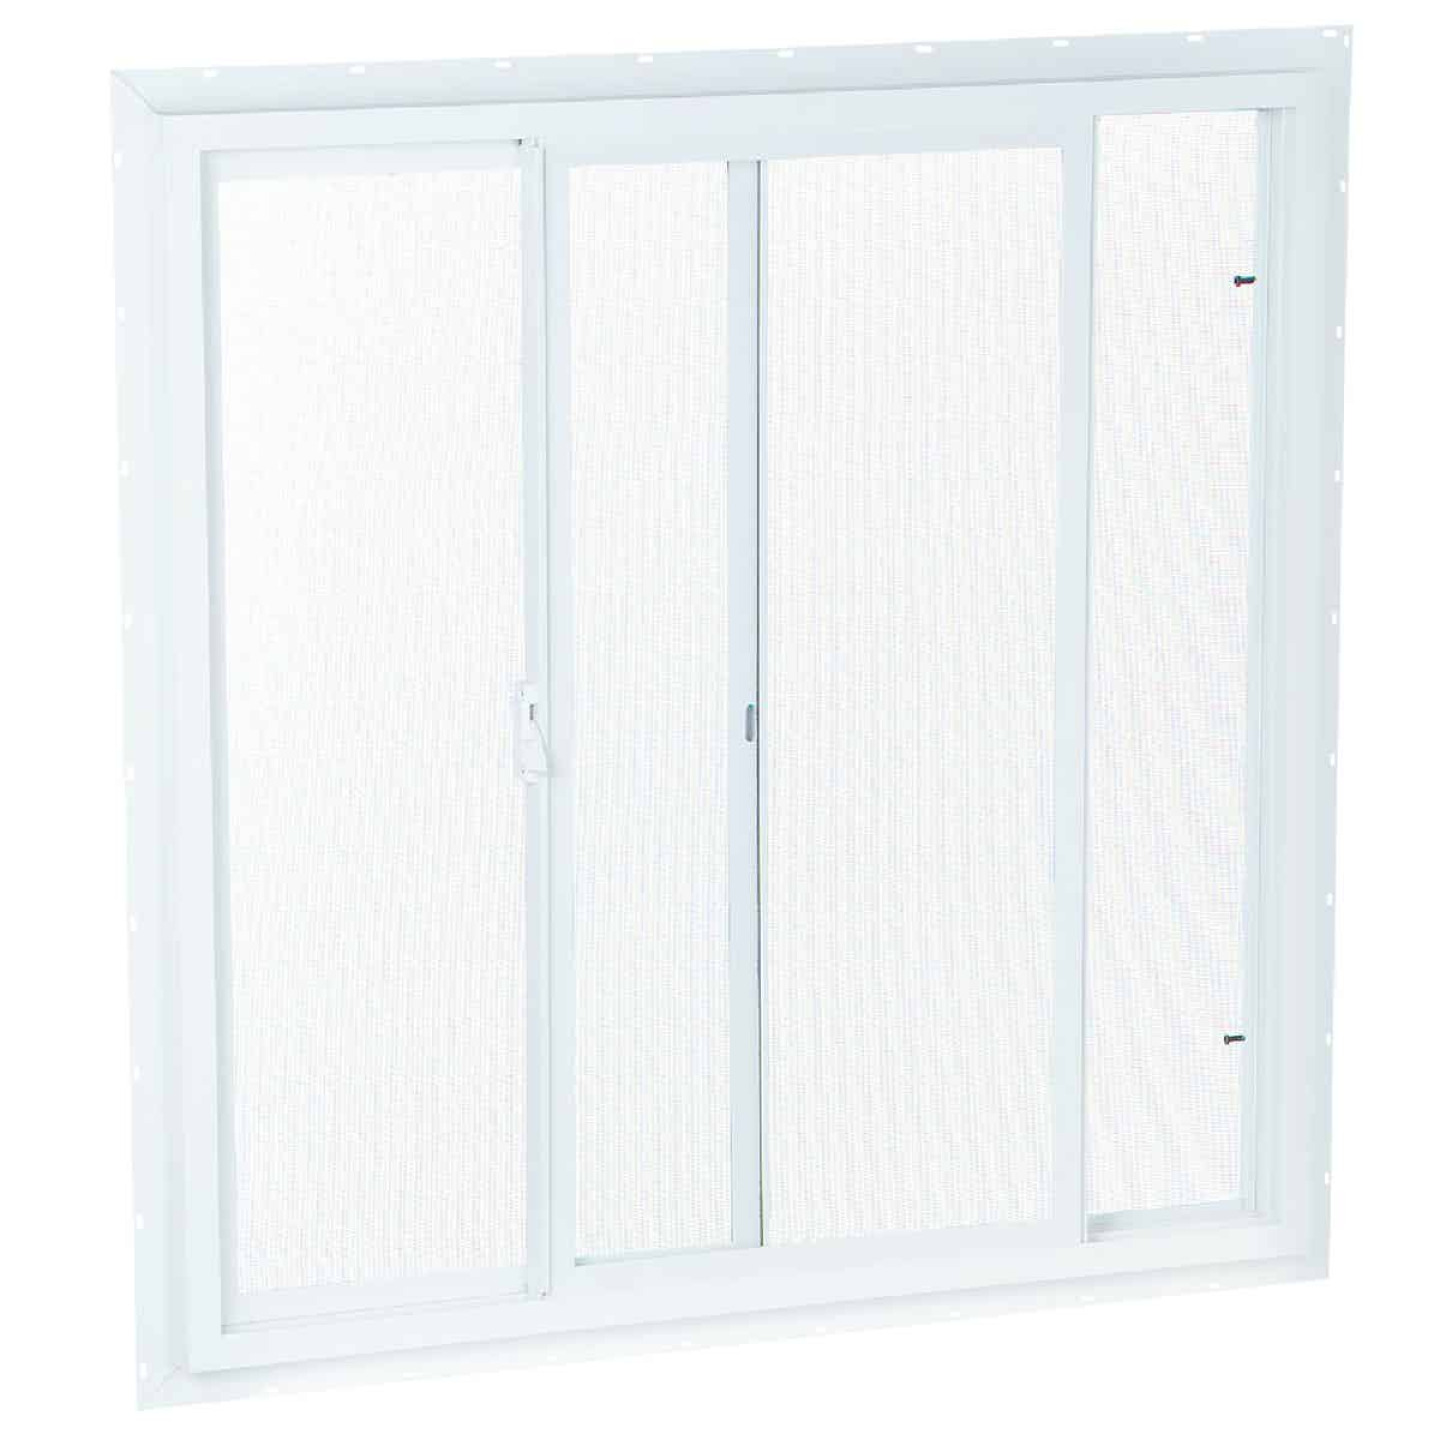 Northview 35-1/2 In. W. x 35-1/2 In. H. White PVC Single Glazed Utility Sliding Window Image 1